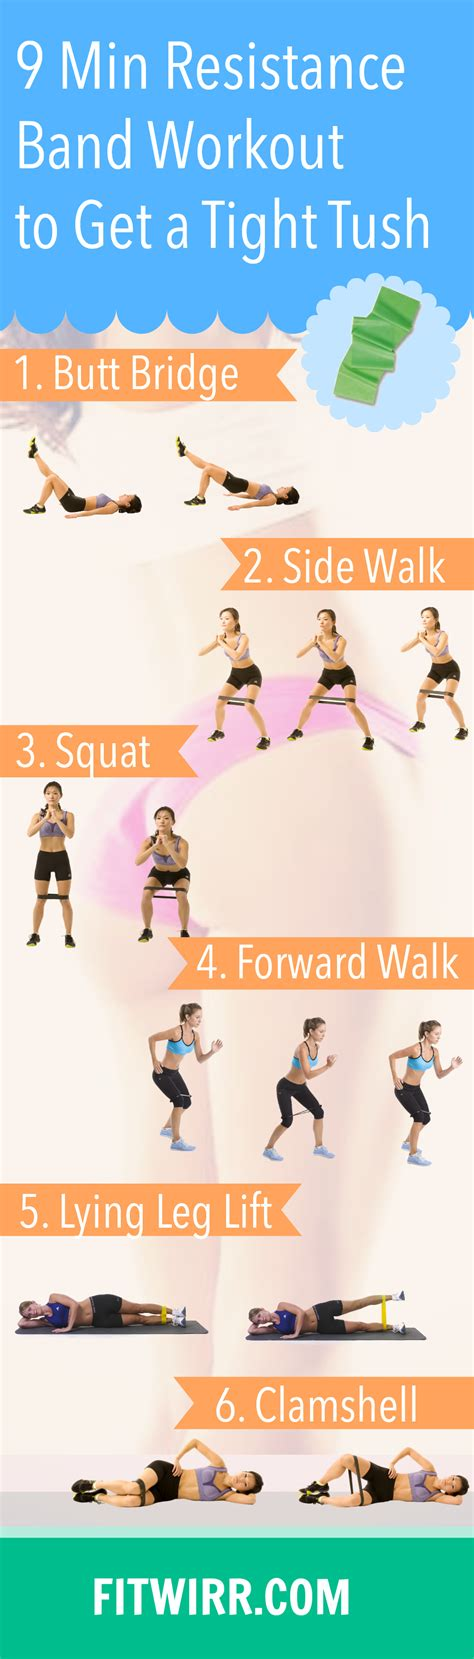 printable exercise band workouts search results for printable resistance band exercises